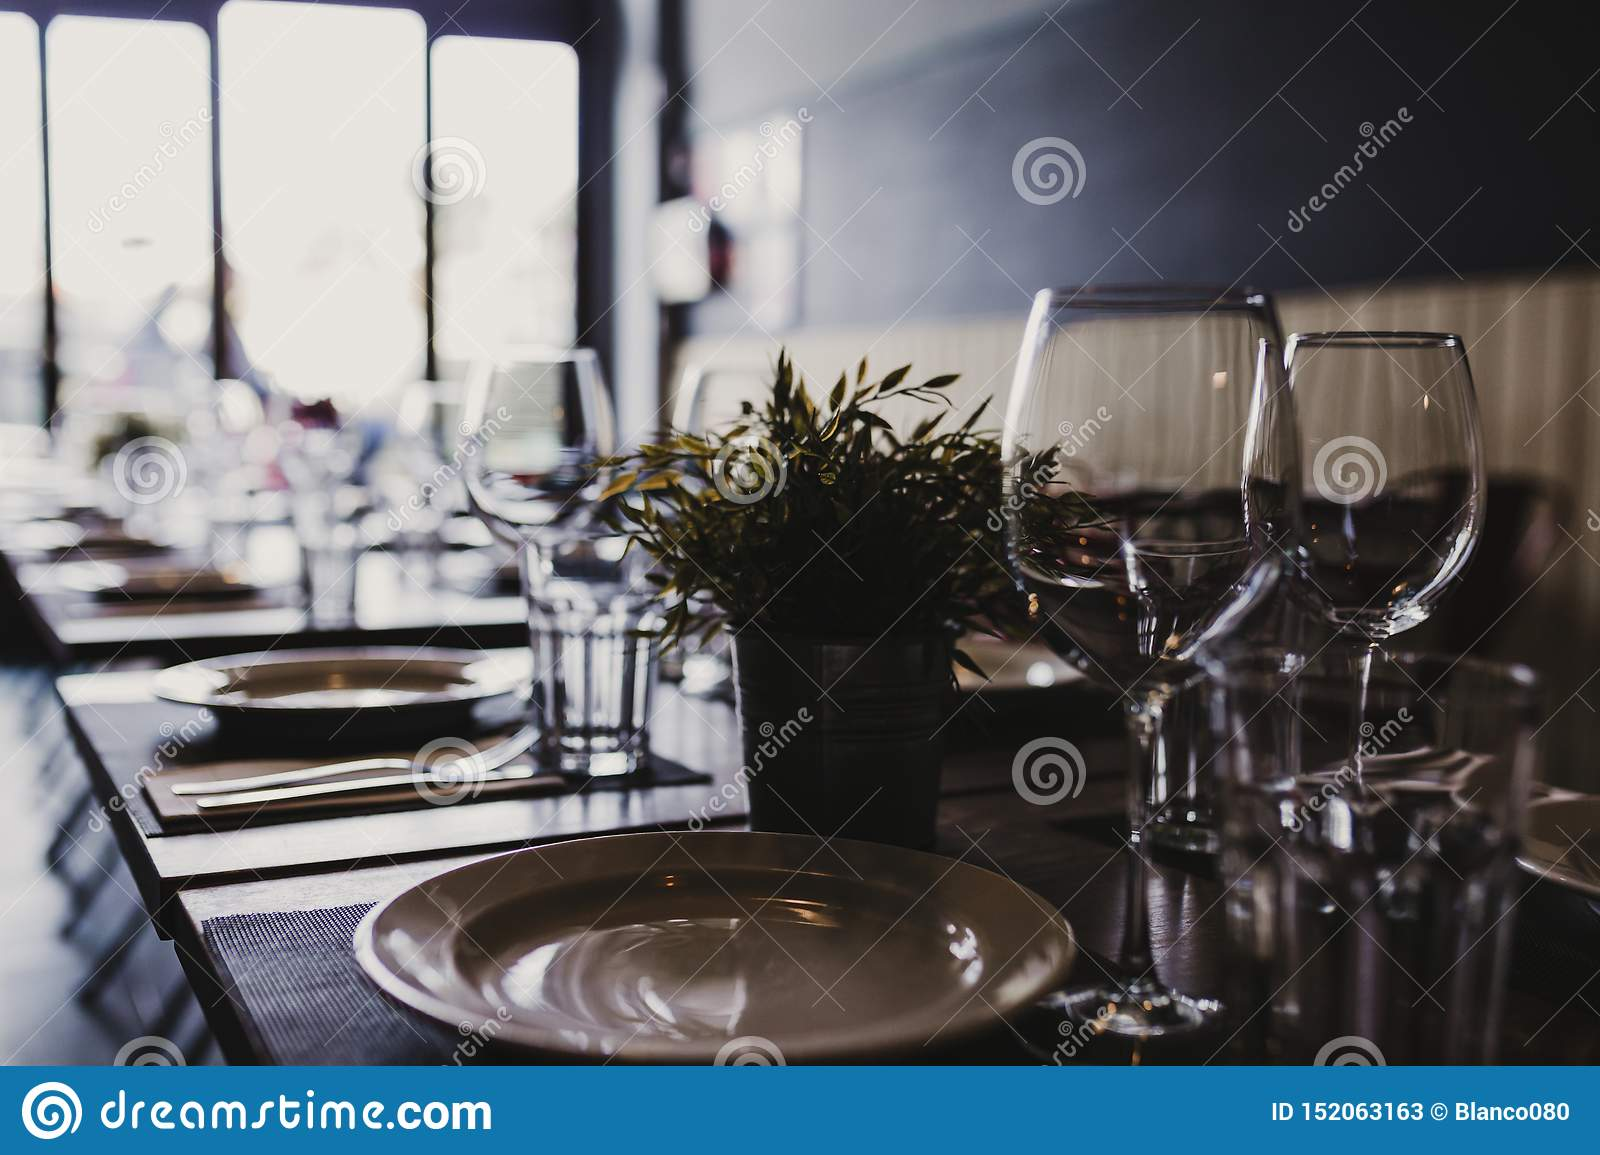 Modern Restaurant Interior Daytime Food And Drink Industry Concept Stock Image Image Of Dining Cutlery 152063163